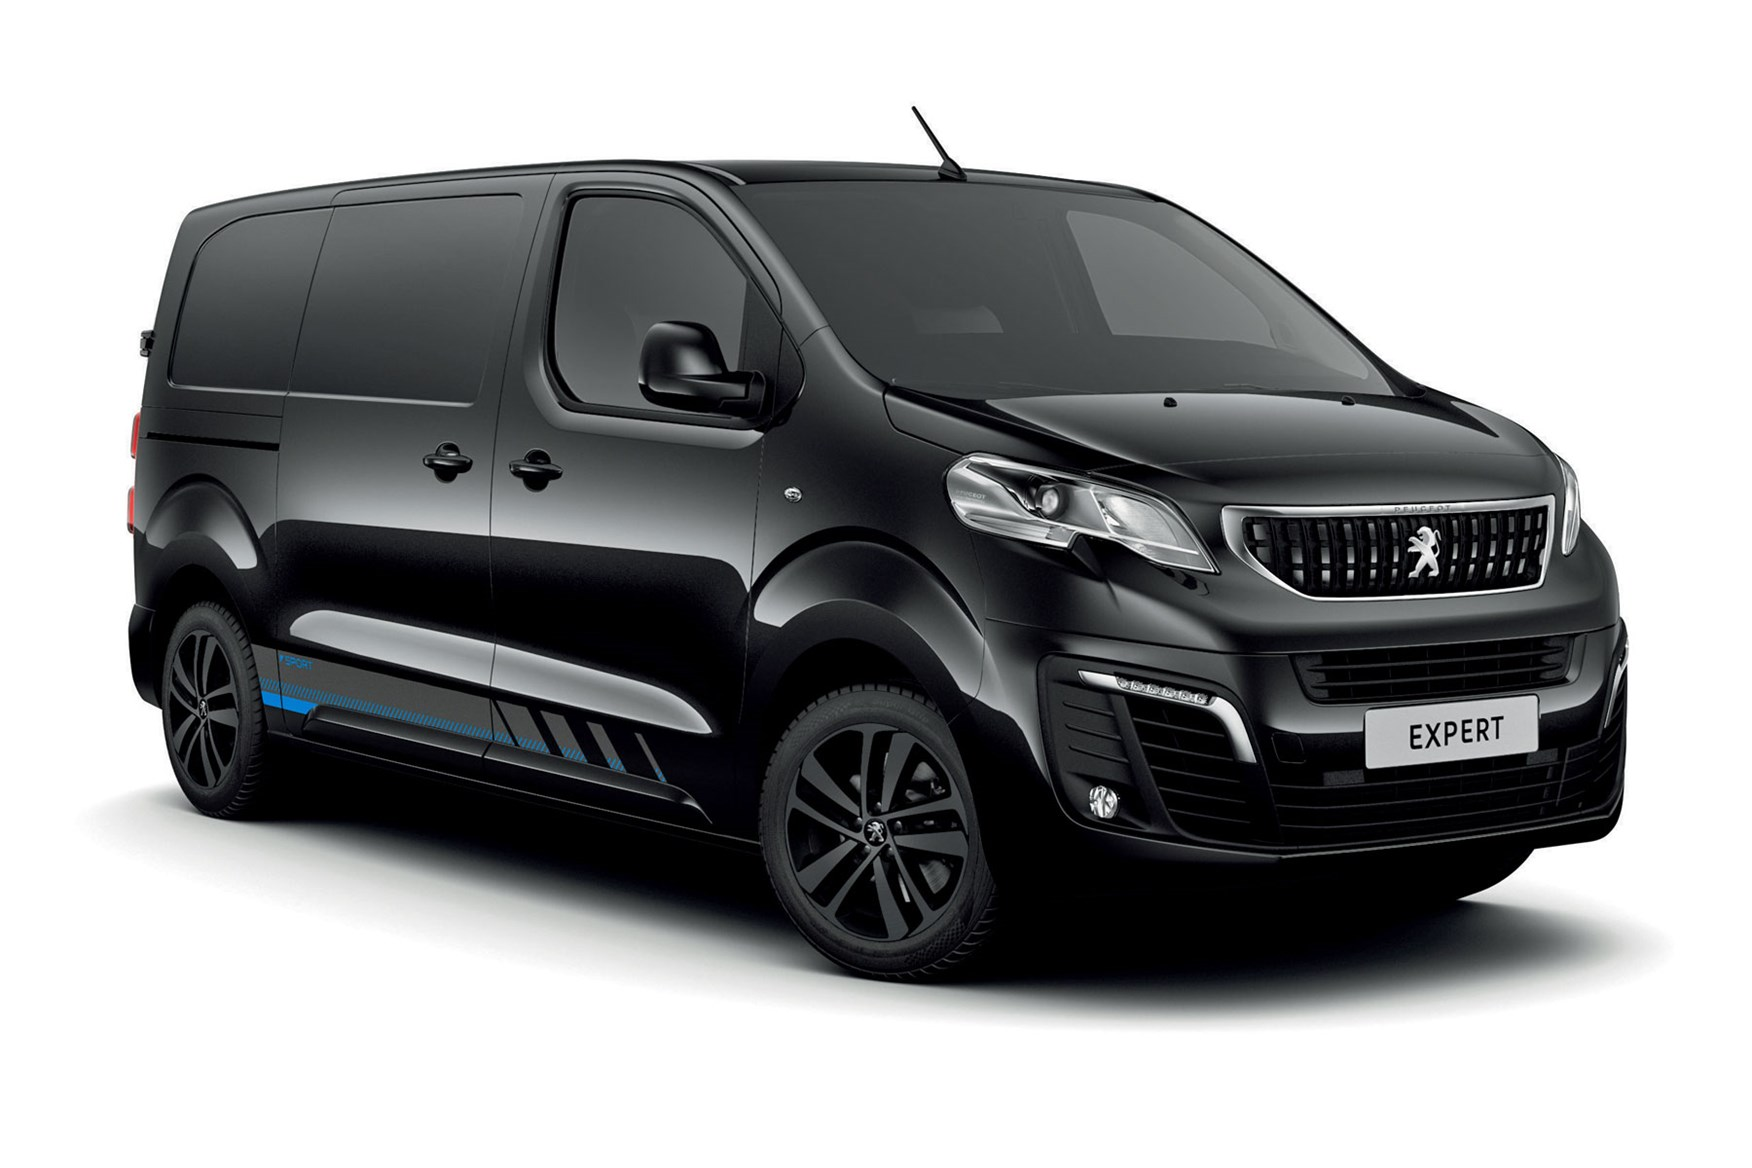 Peugeot Expert Sport Edition, front view, black, 2020